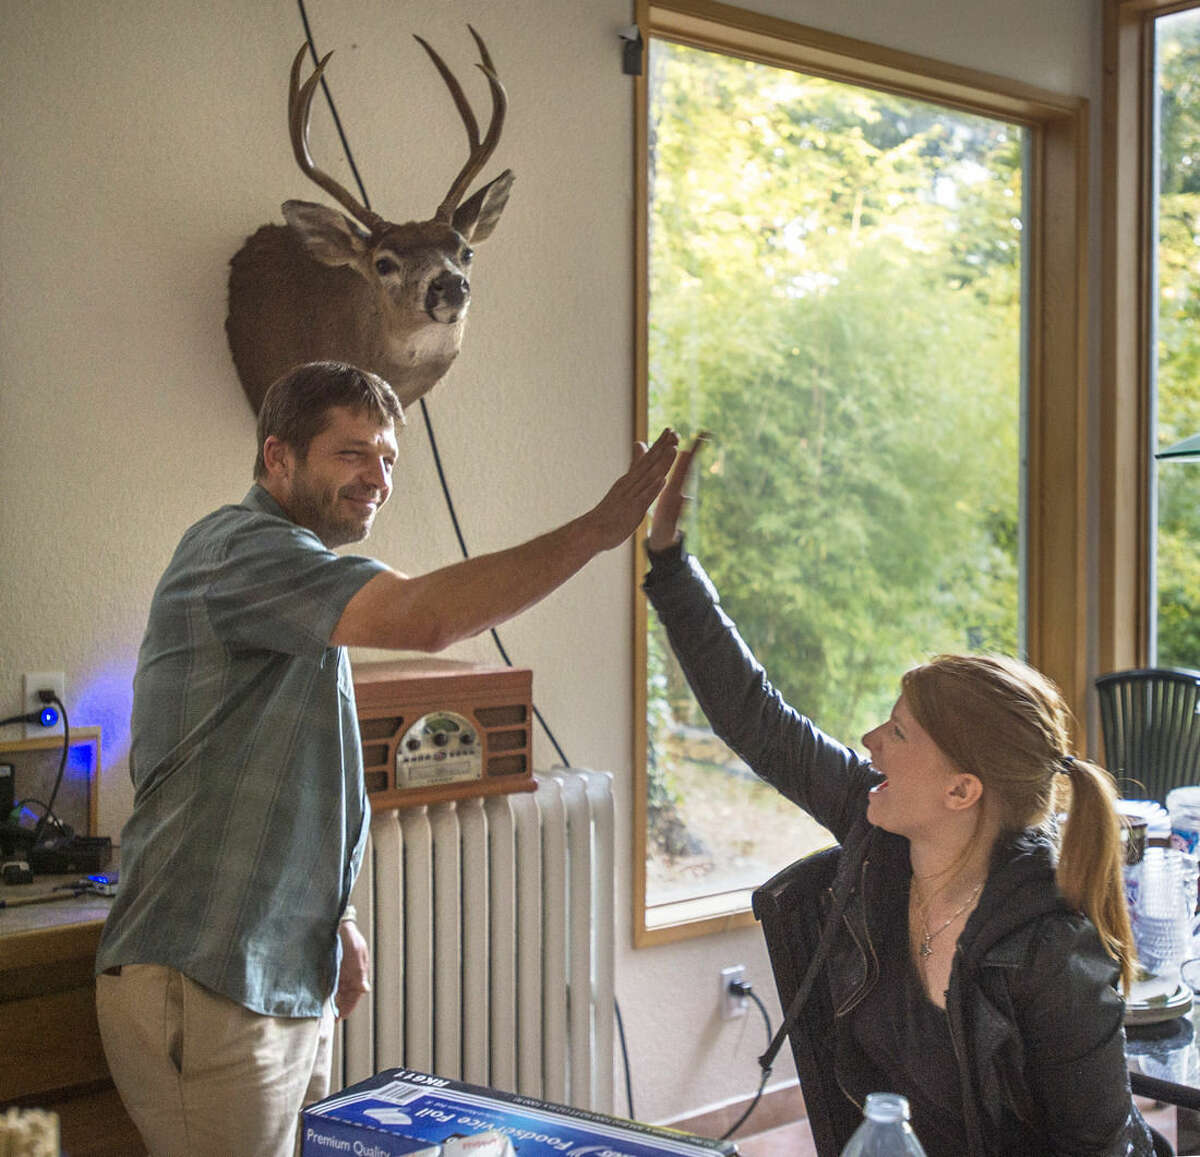 In a Tuesday, July 21, 2015 photo, actor Jason Stange high fives co-star Katie Hemming during filming for the movie